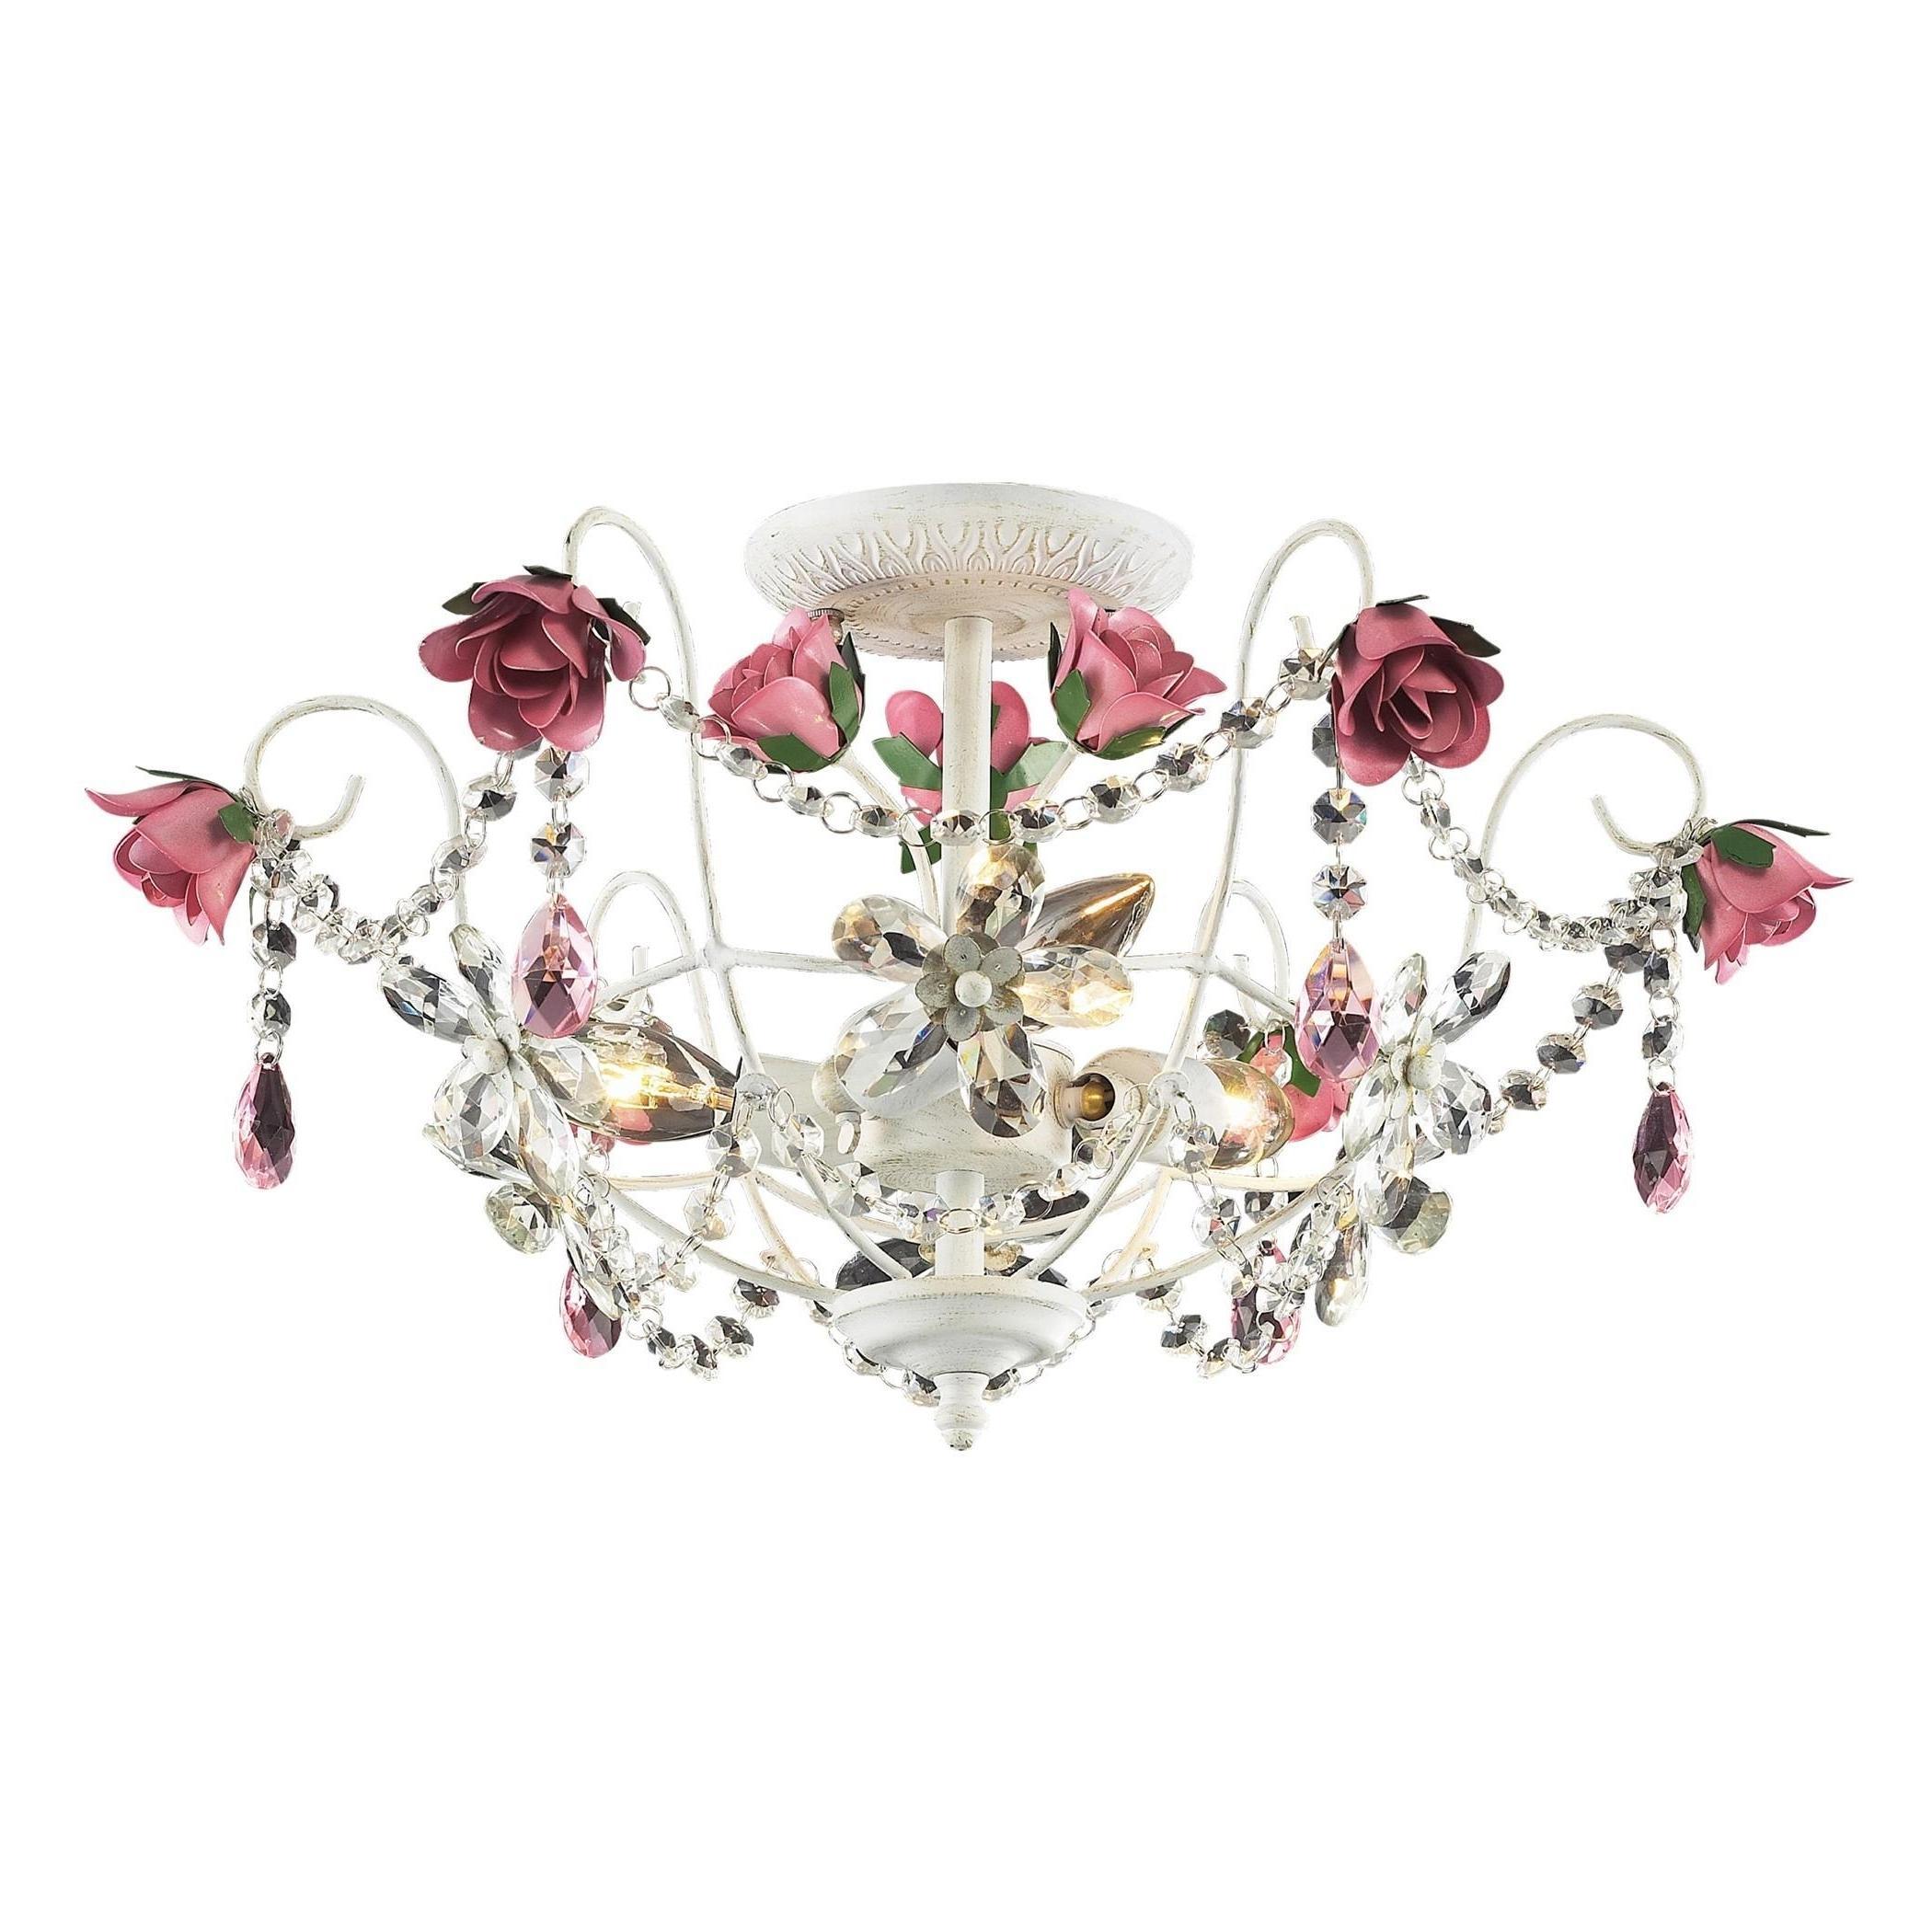 Most Popular Chandeliers : Shabby Chic Chandeliers Inspirational Chandeliers In Small Shabby Chic Chandelier (View 11 of 20)